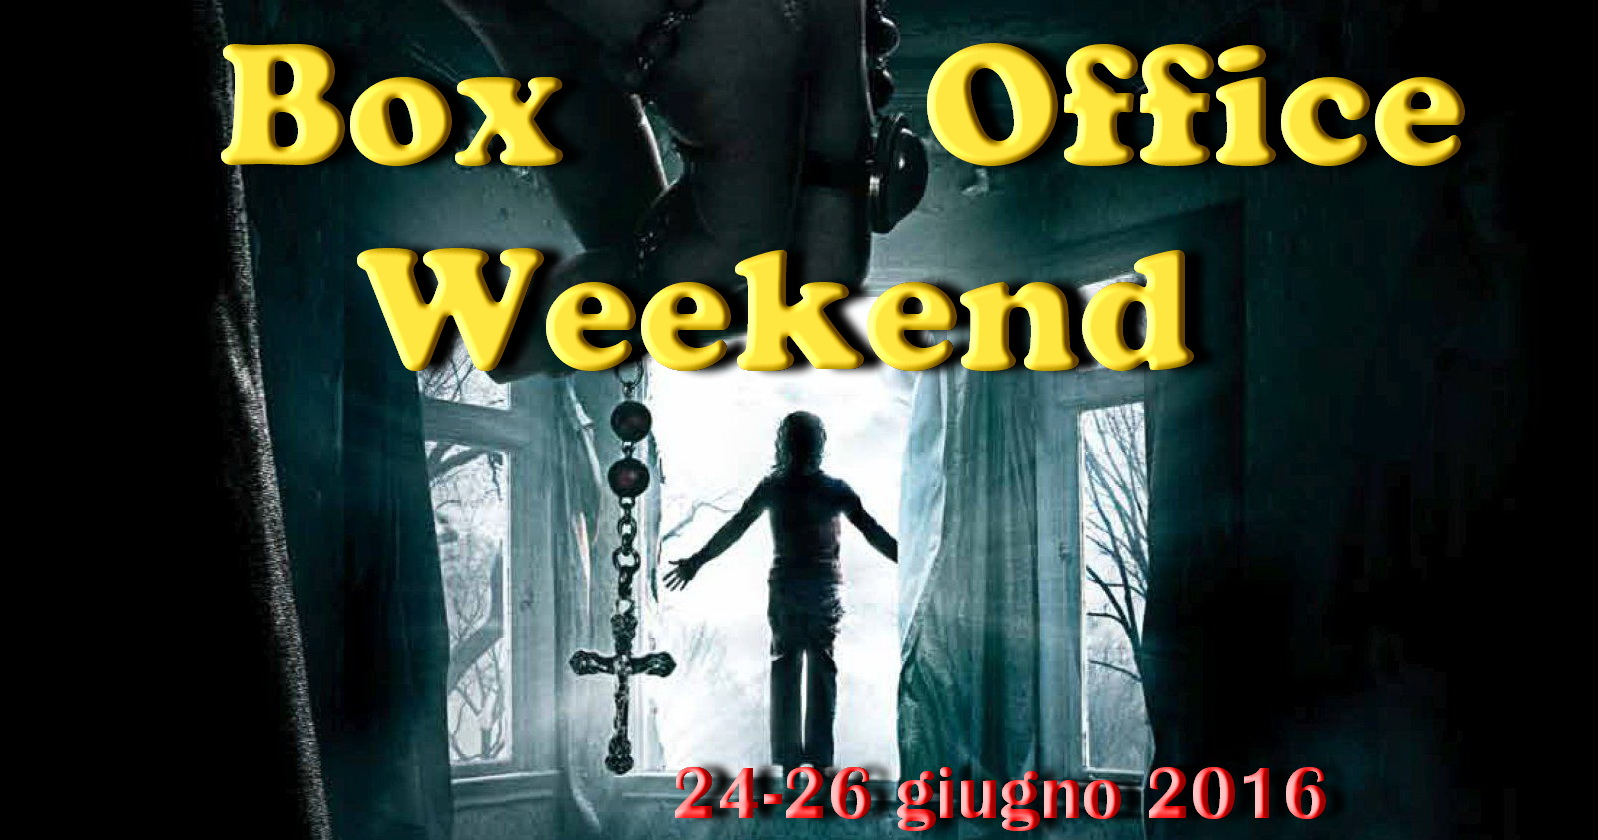 "Ultimo appuntamento di giugno con ""Box Office Weekend"" e gli incassi del fine settimana cinematografico. Dopo i clamorosi 40 milioni di dollari del primo weekend americano, è il buon horror ""The Conjuring […]"